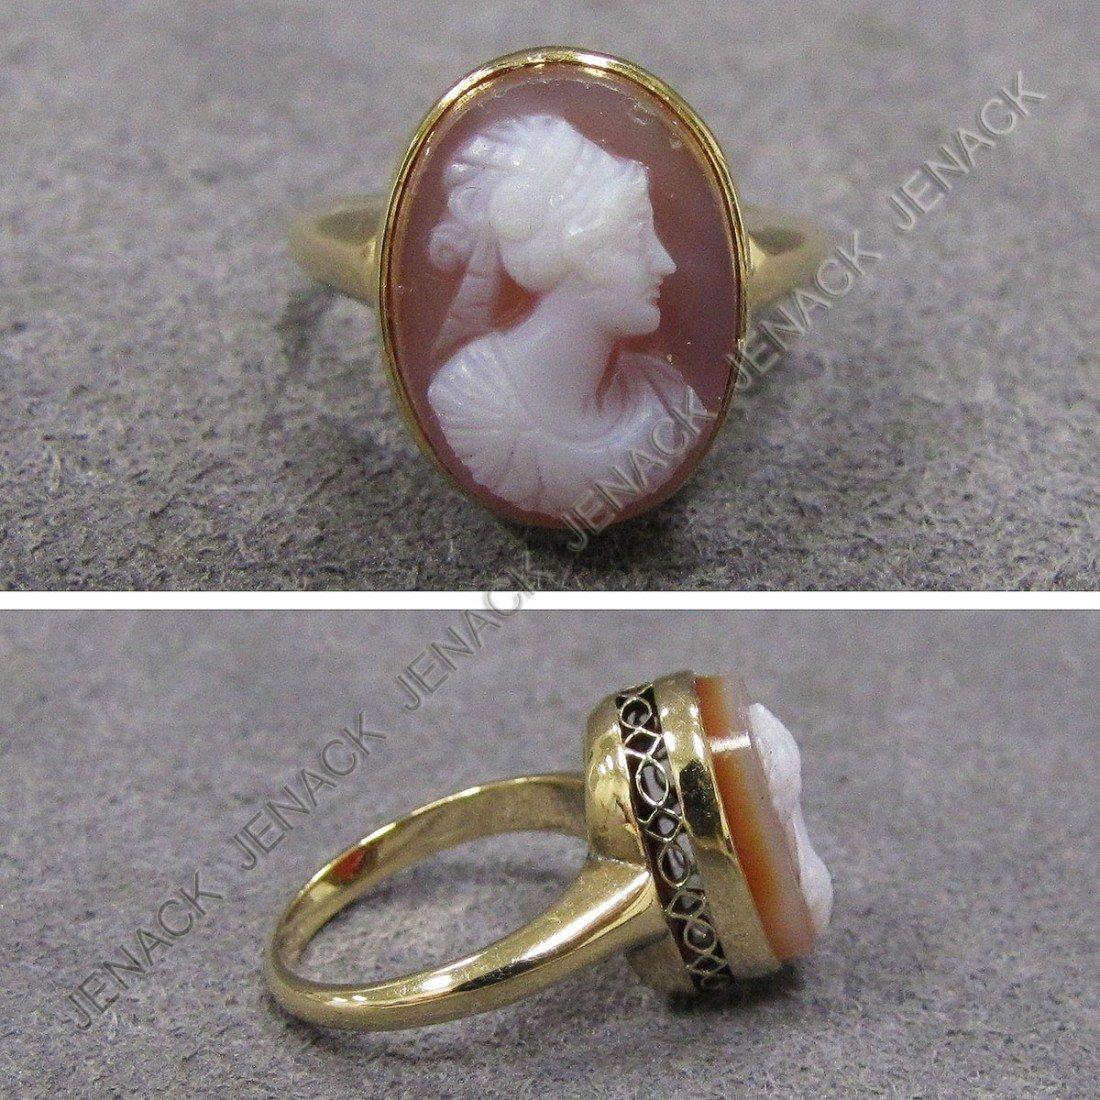 5: ANTIQUE YELLOW GOLD (TESTS 14K) CAMEO RING